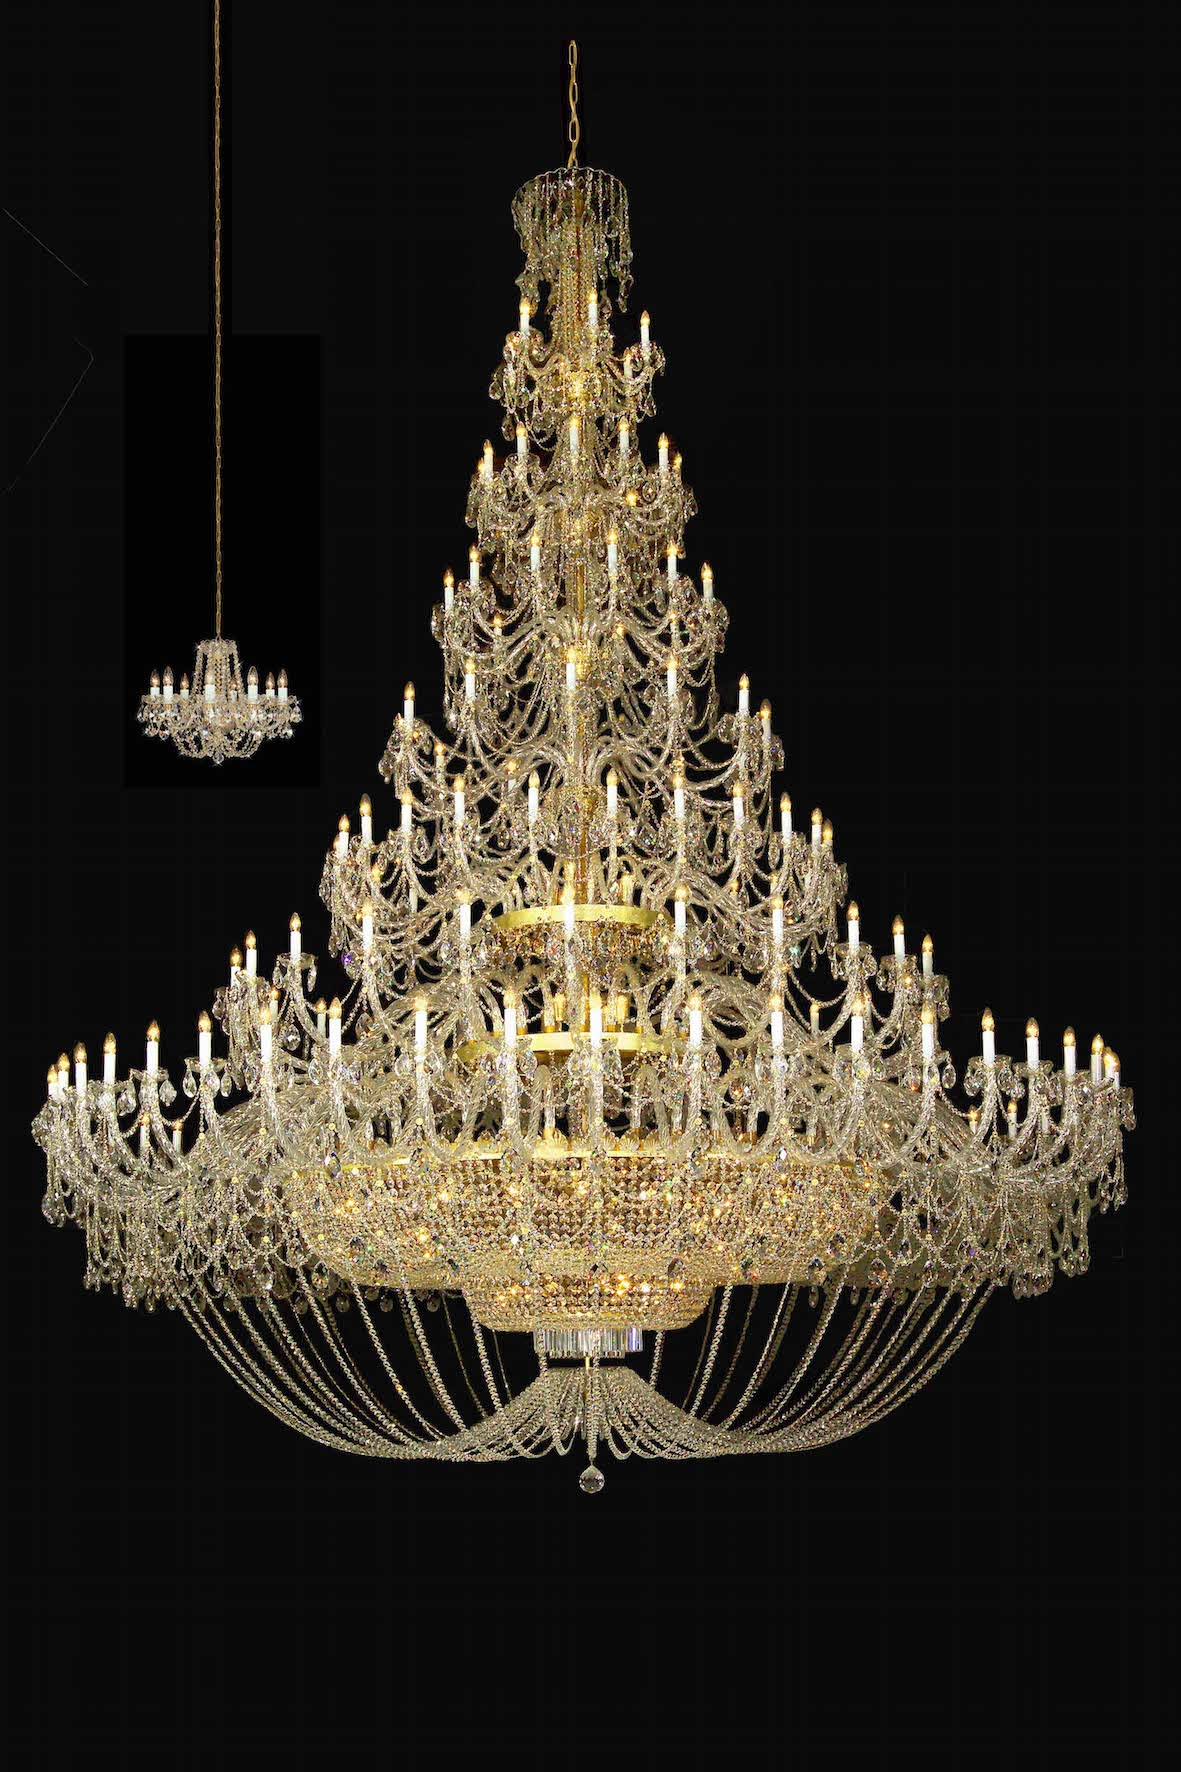 The Big Chandelier News Quality Czech Crystal Chandeliers And Intended For Big Crystal Chandelier (View 4 of 12)